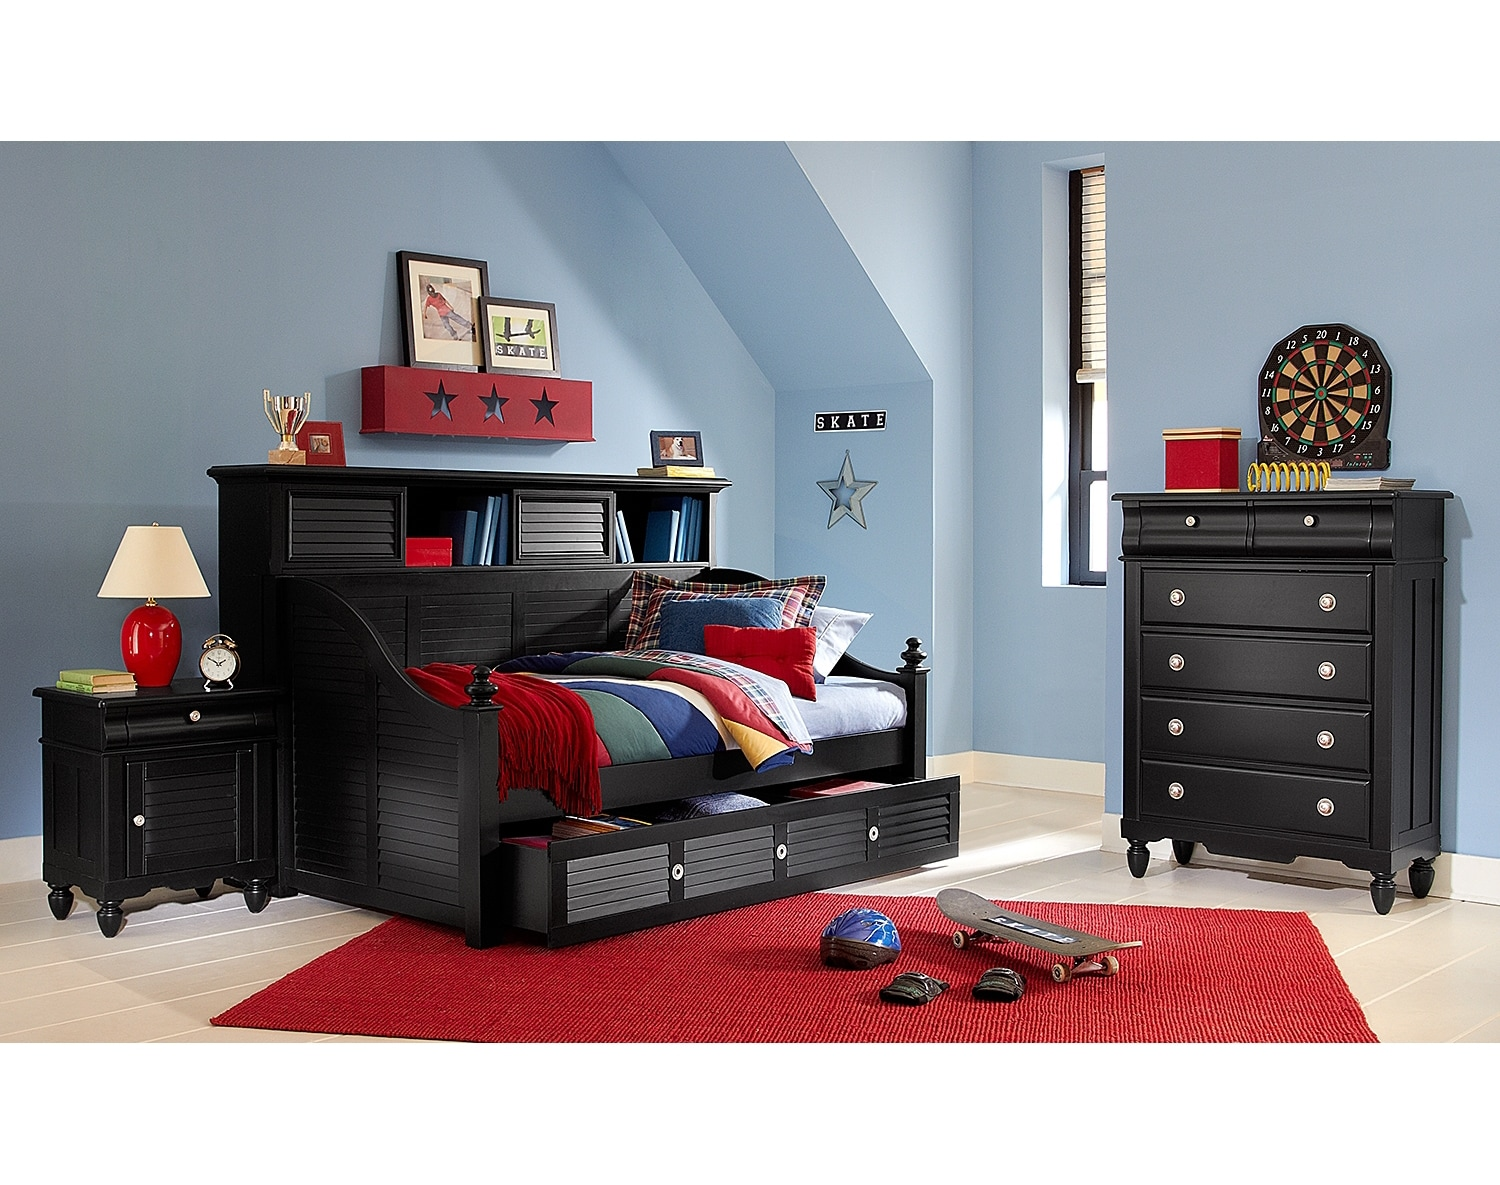 Kids Furniture - The Mayflower II Black Collection - Bookcase Daybed with Trundle